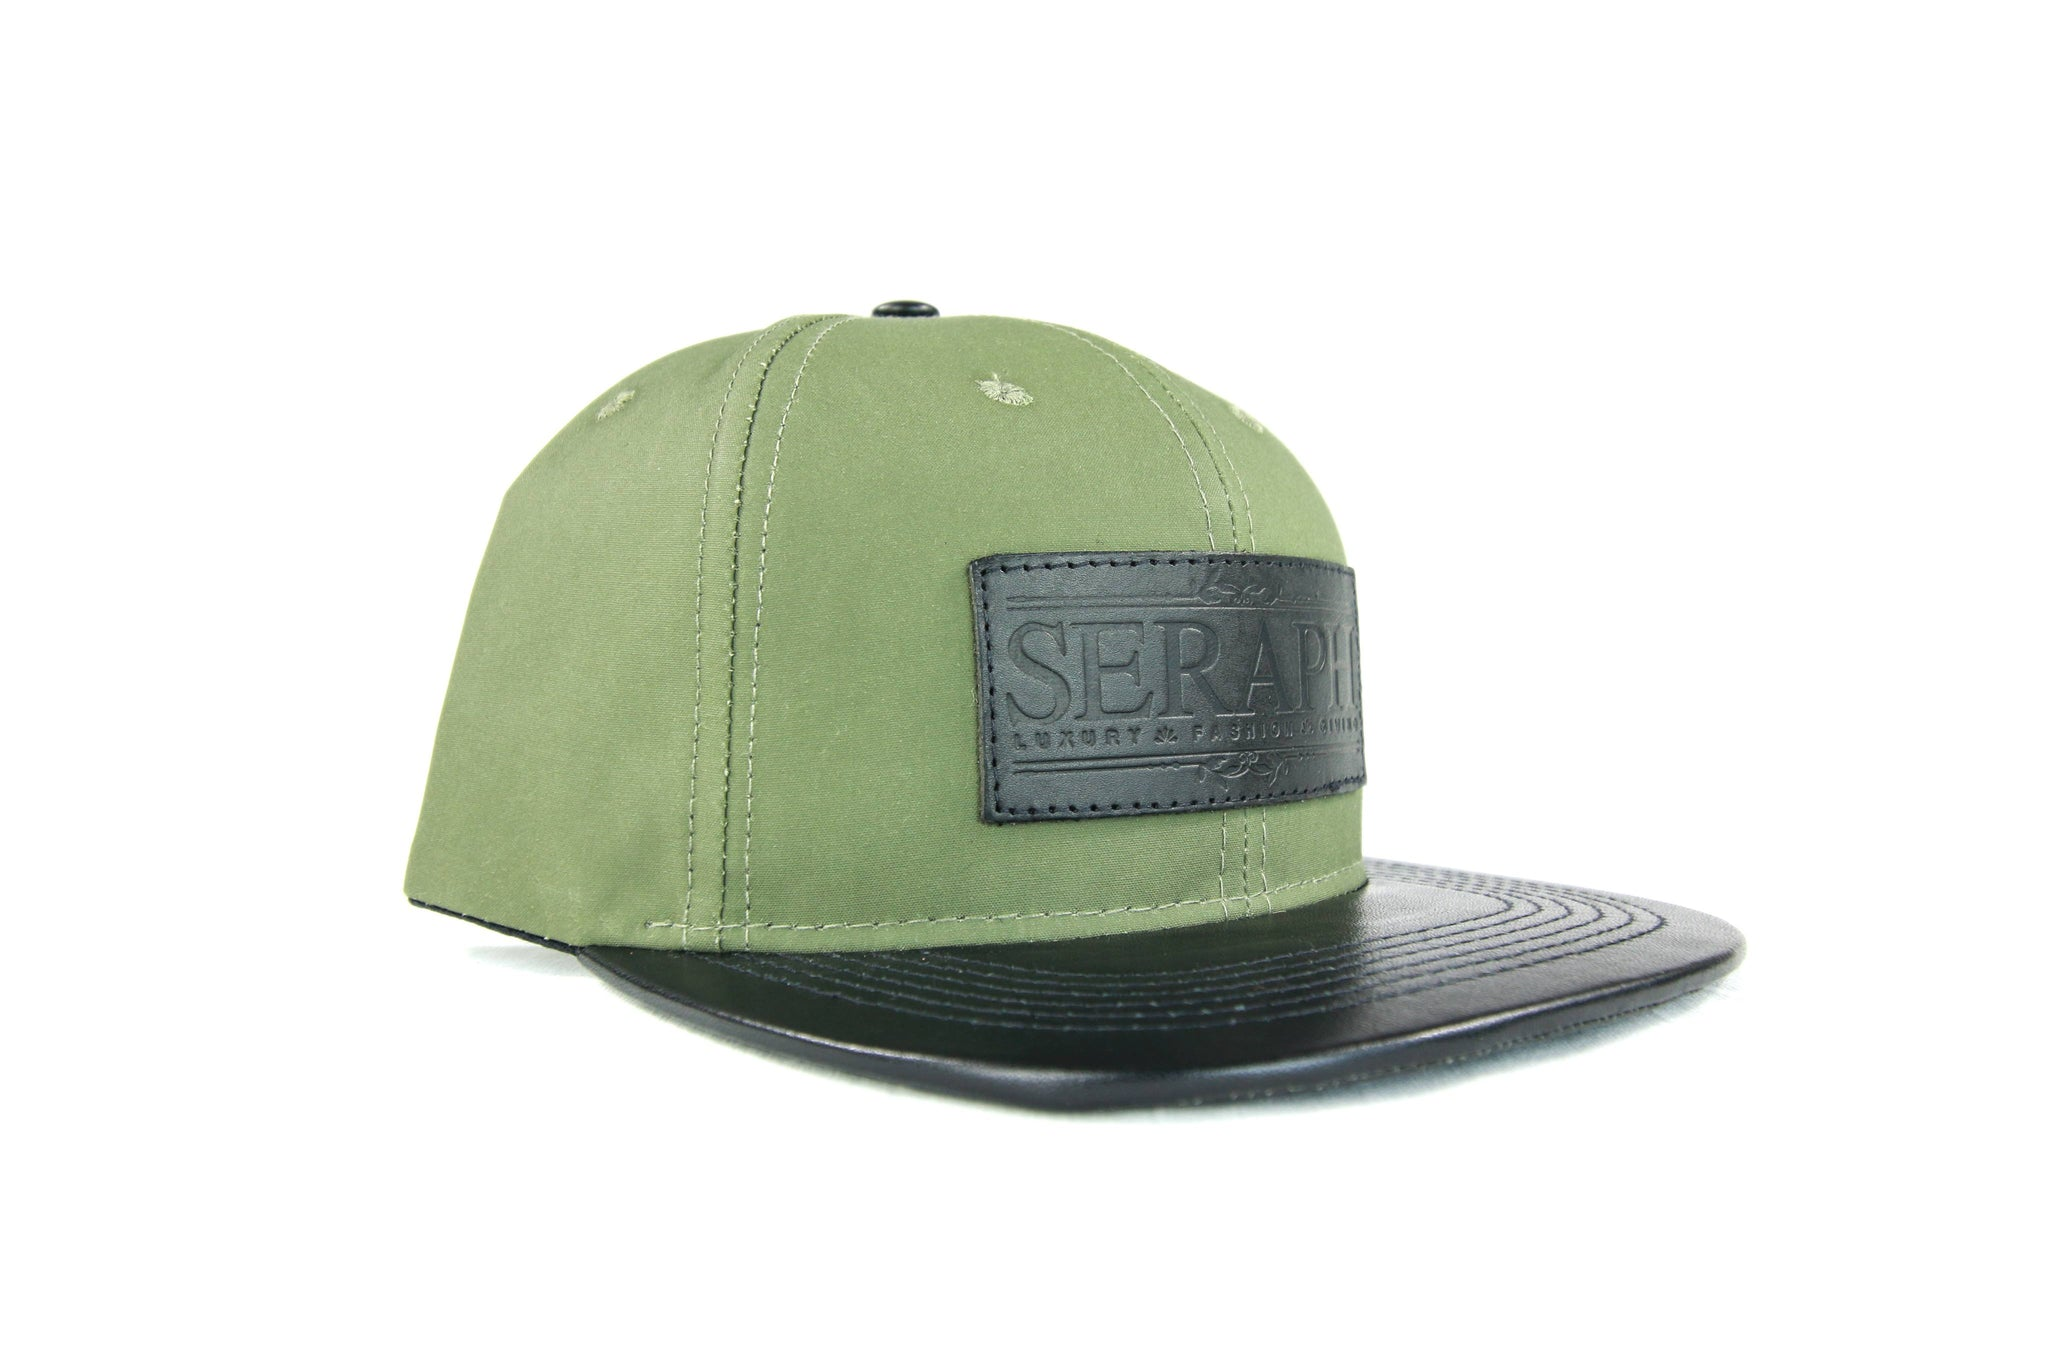 Black Label Hat, Water Resistant Olive Green